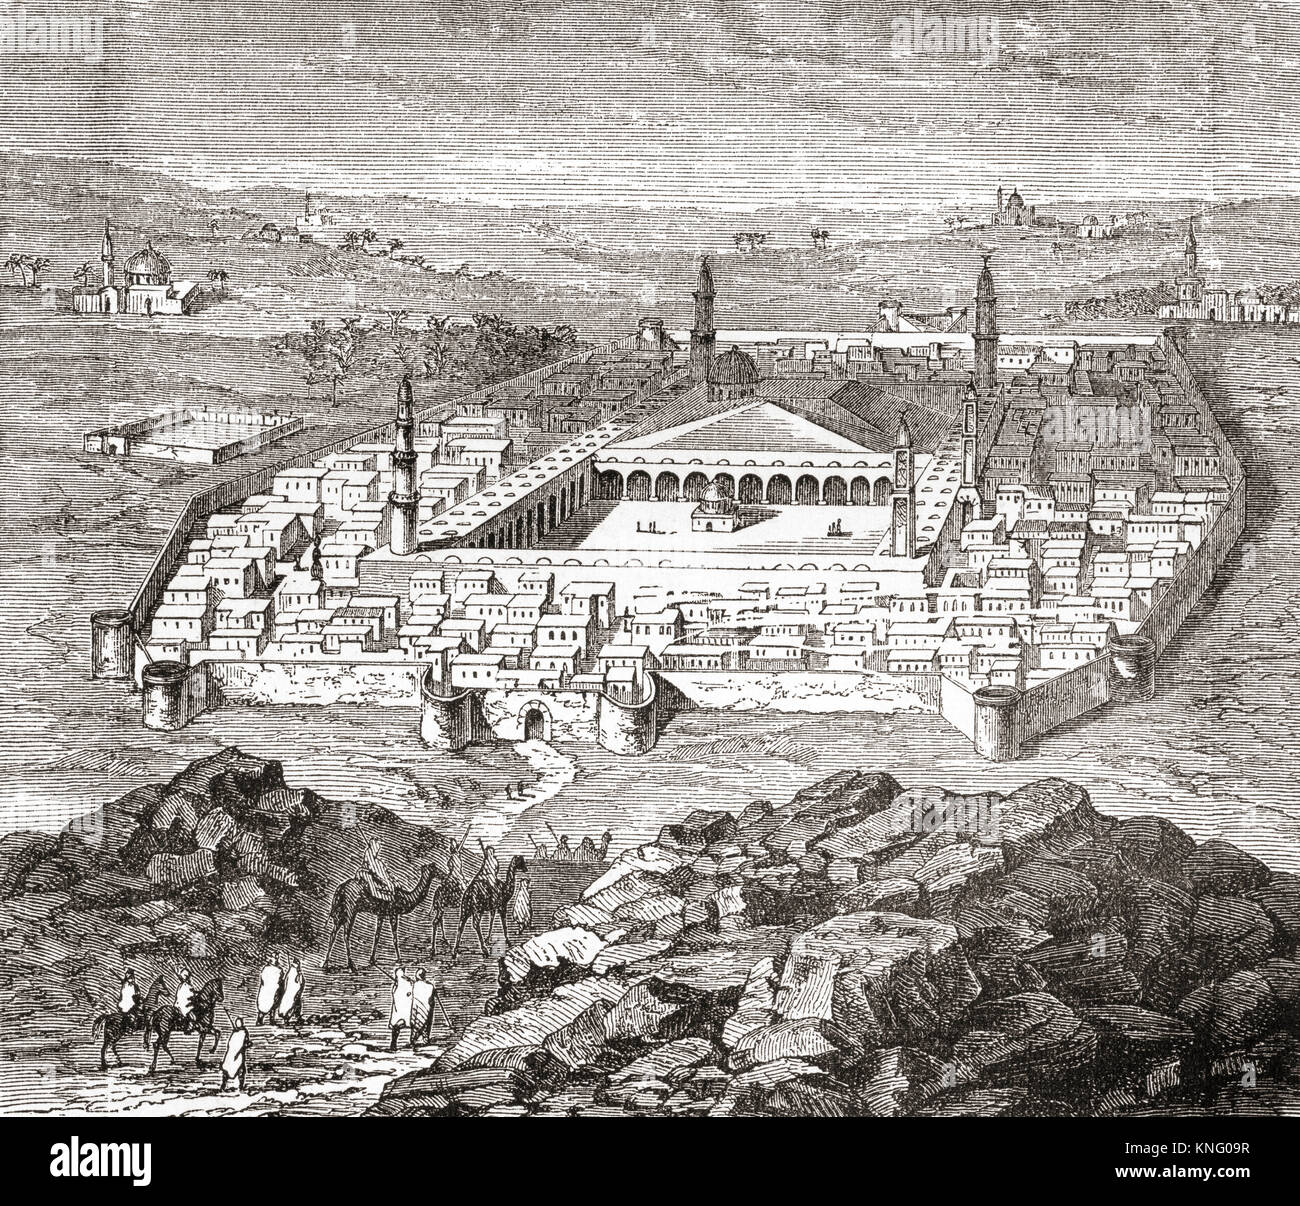 Medina, Saudi Arabia, in the late 18th century.   From Ward and Lock's Illustrated History of the World, published - Stock Image